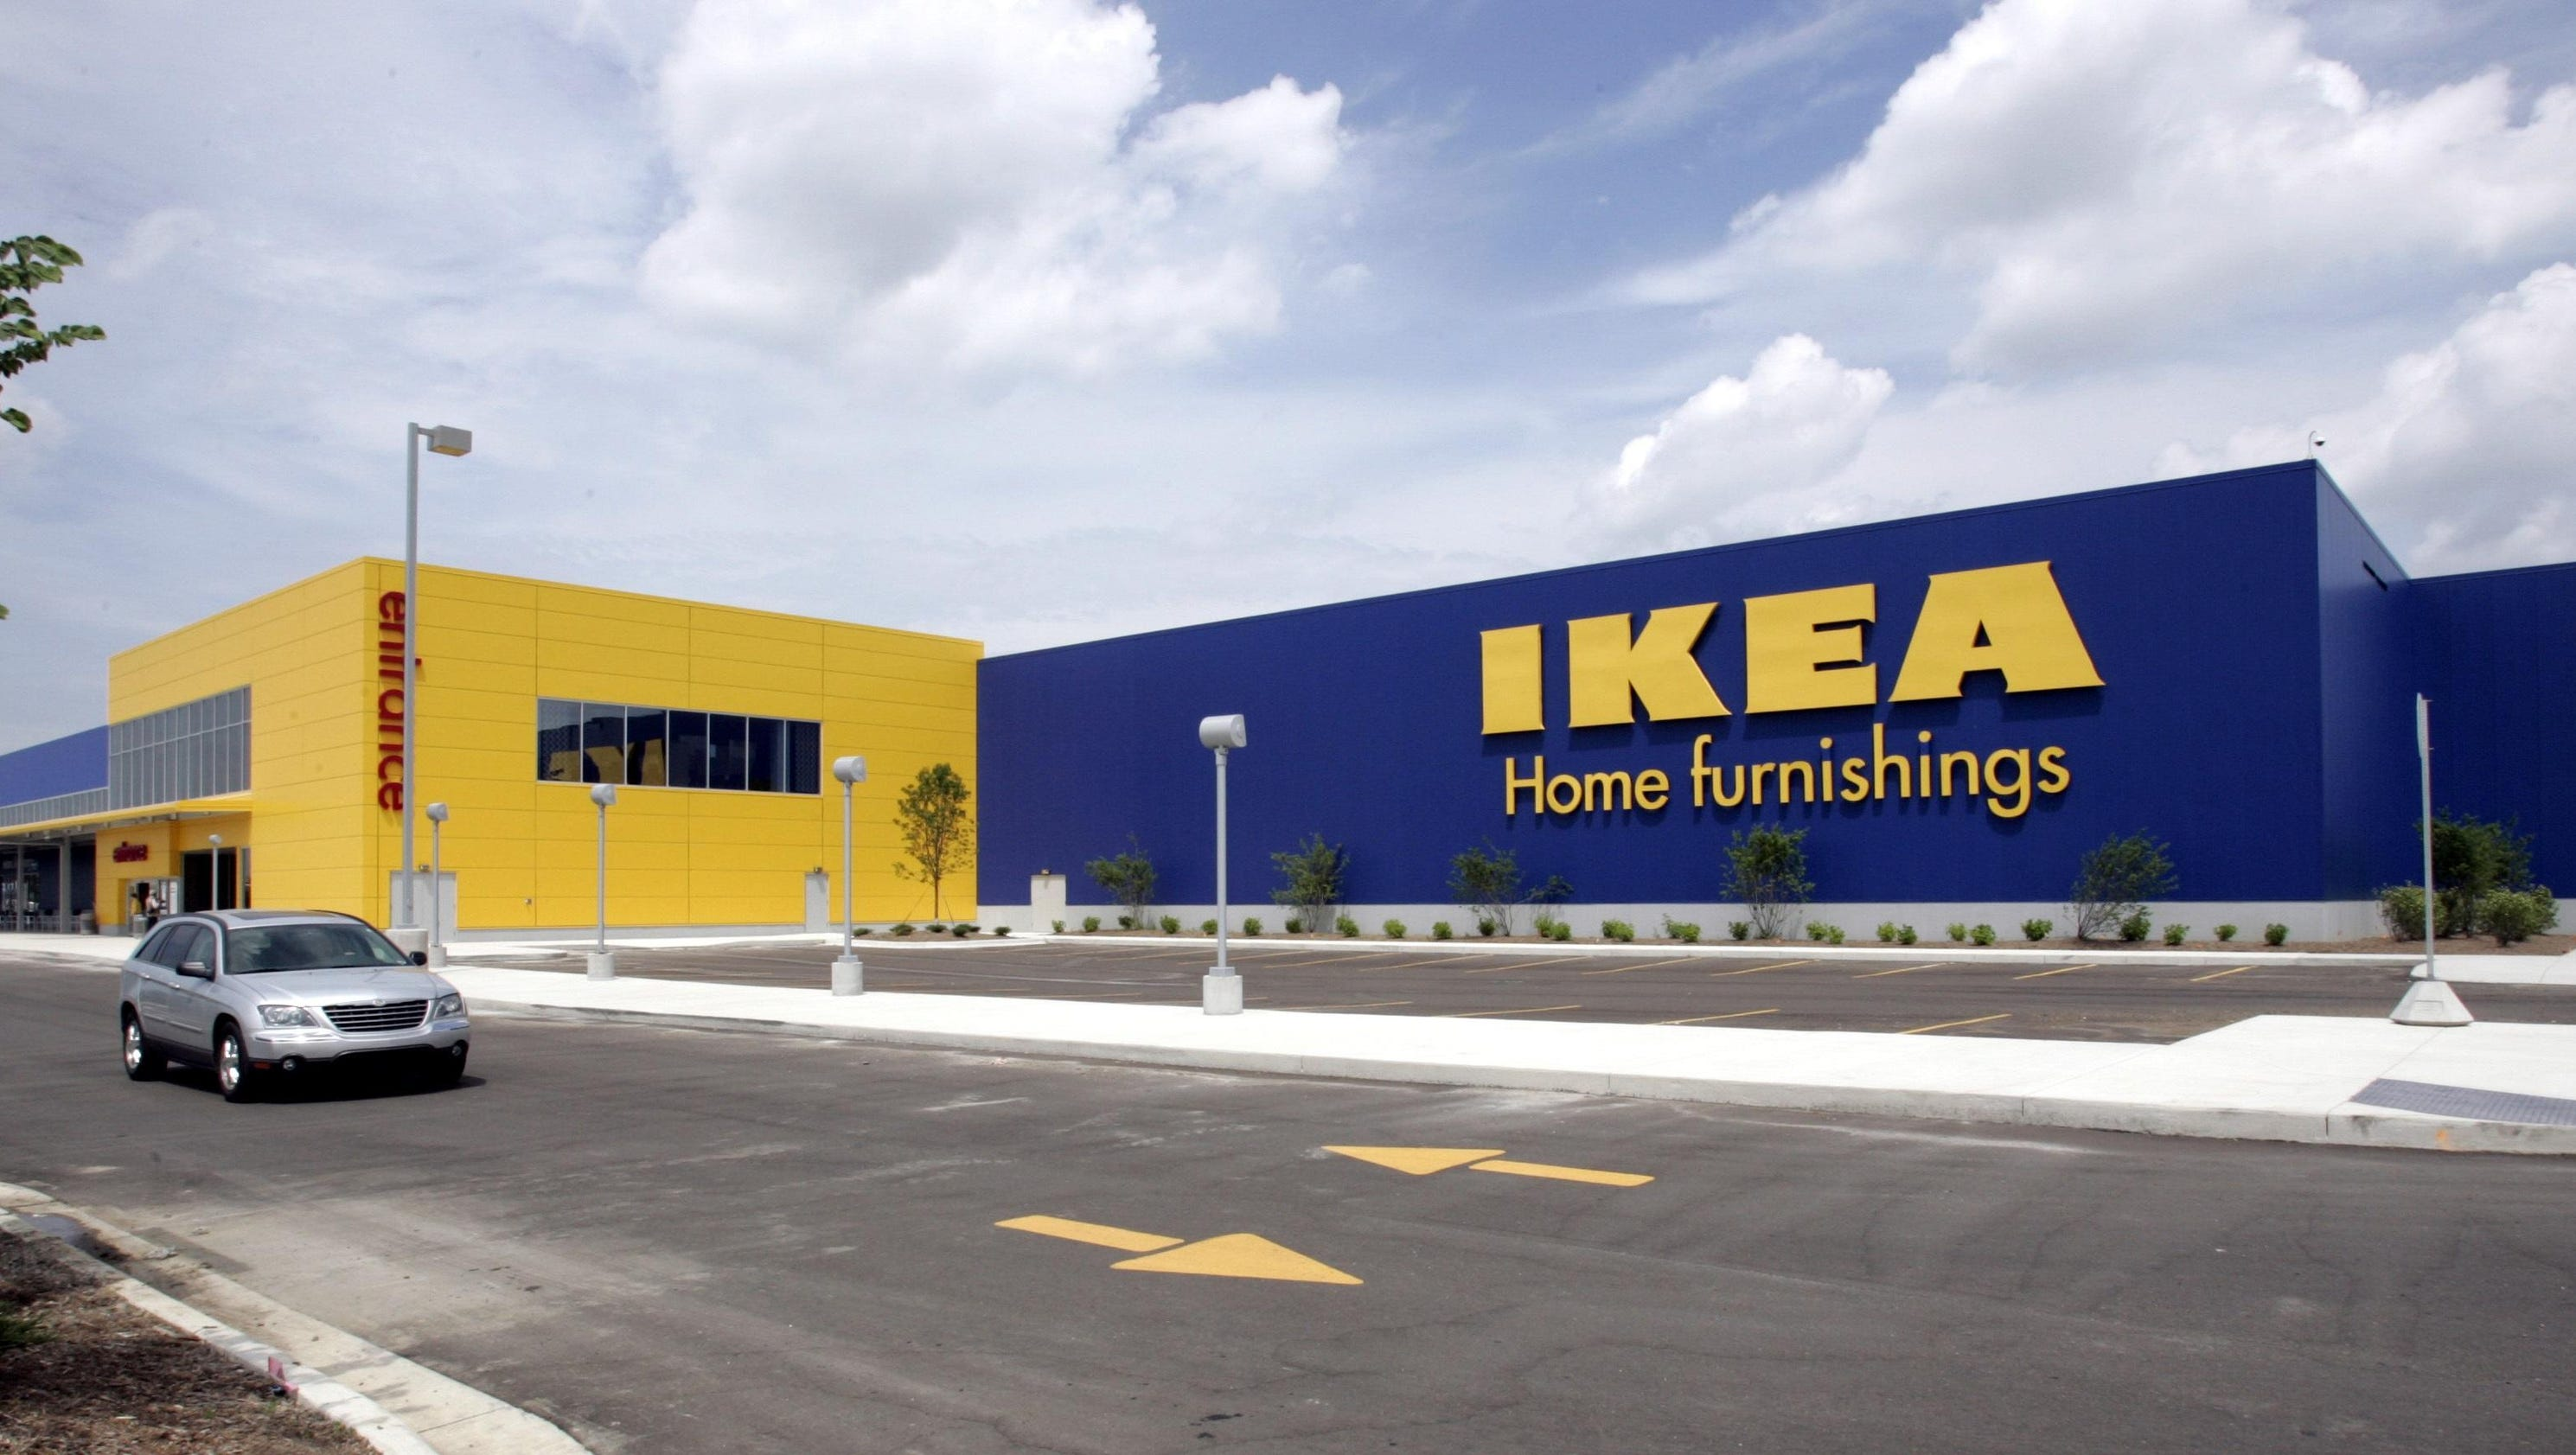 ikea considered noco sites before settling on broomfield